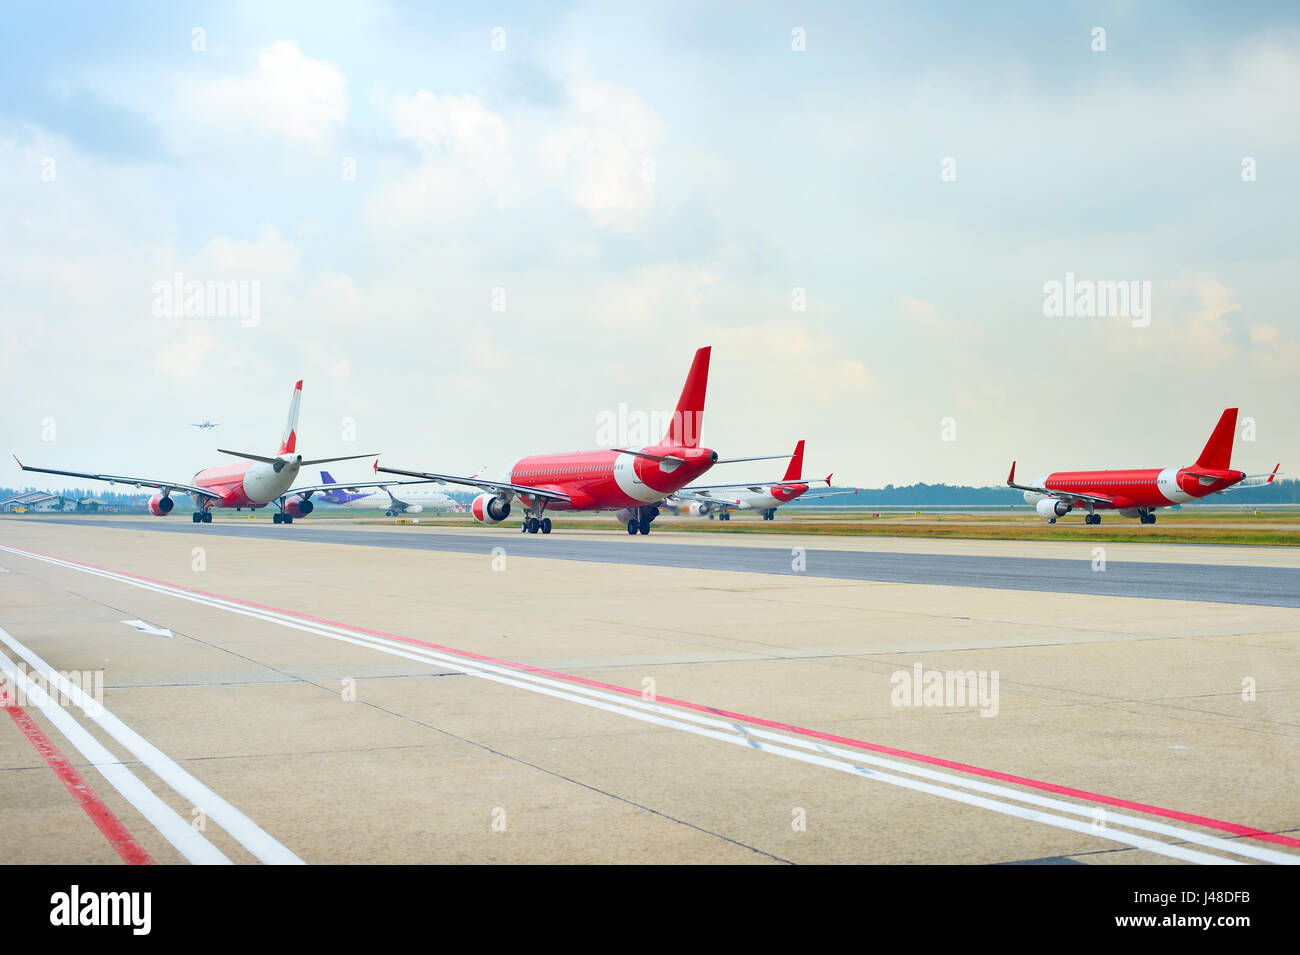 Airplanes at runway in an airport waiting for takeoff - Stock Image